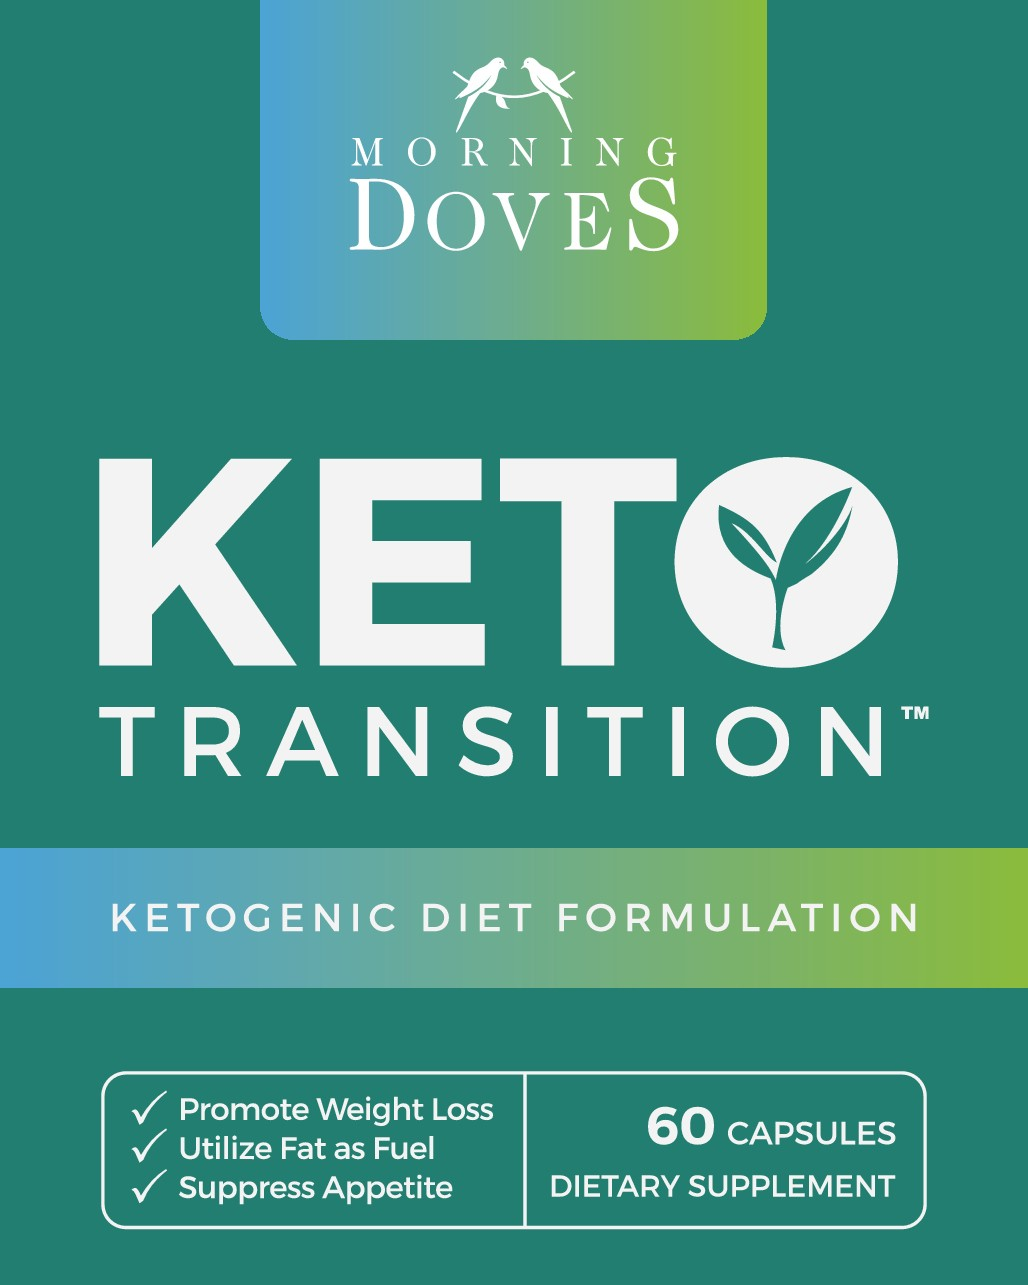 Design a creative KETO Bottle Label for Morning Doves!